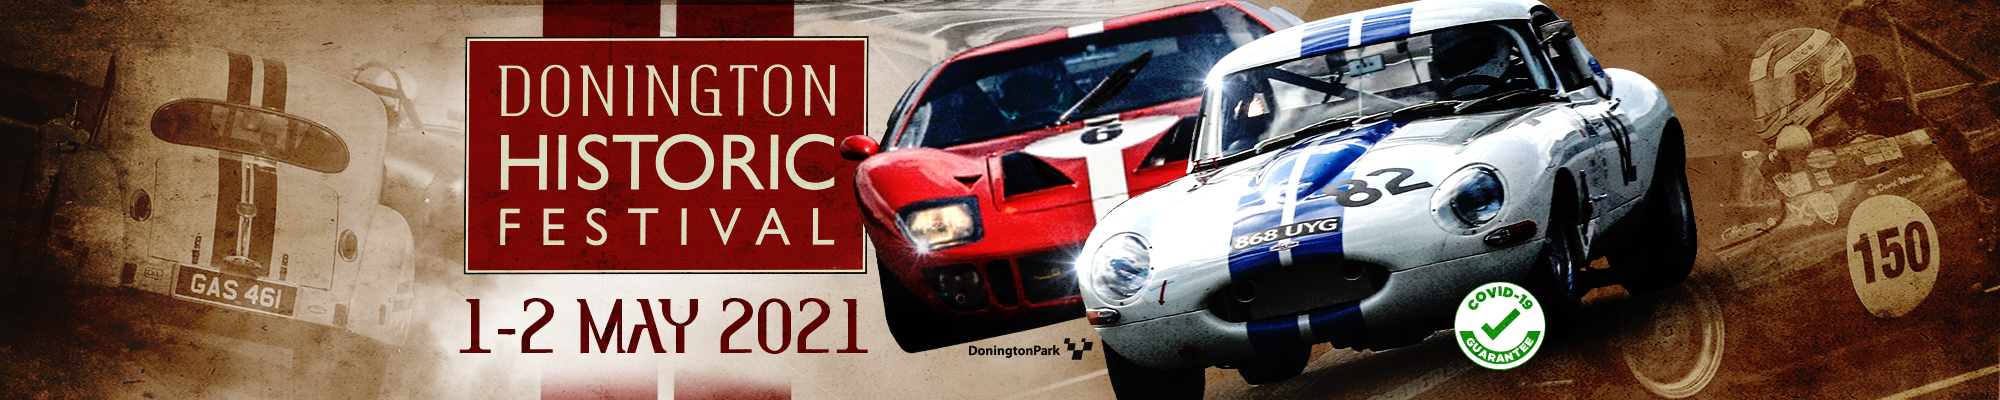 Donington Historic Festival -  POSTPONED